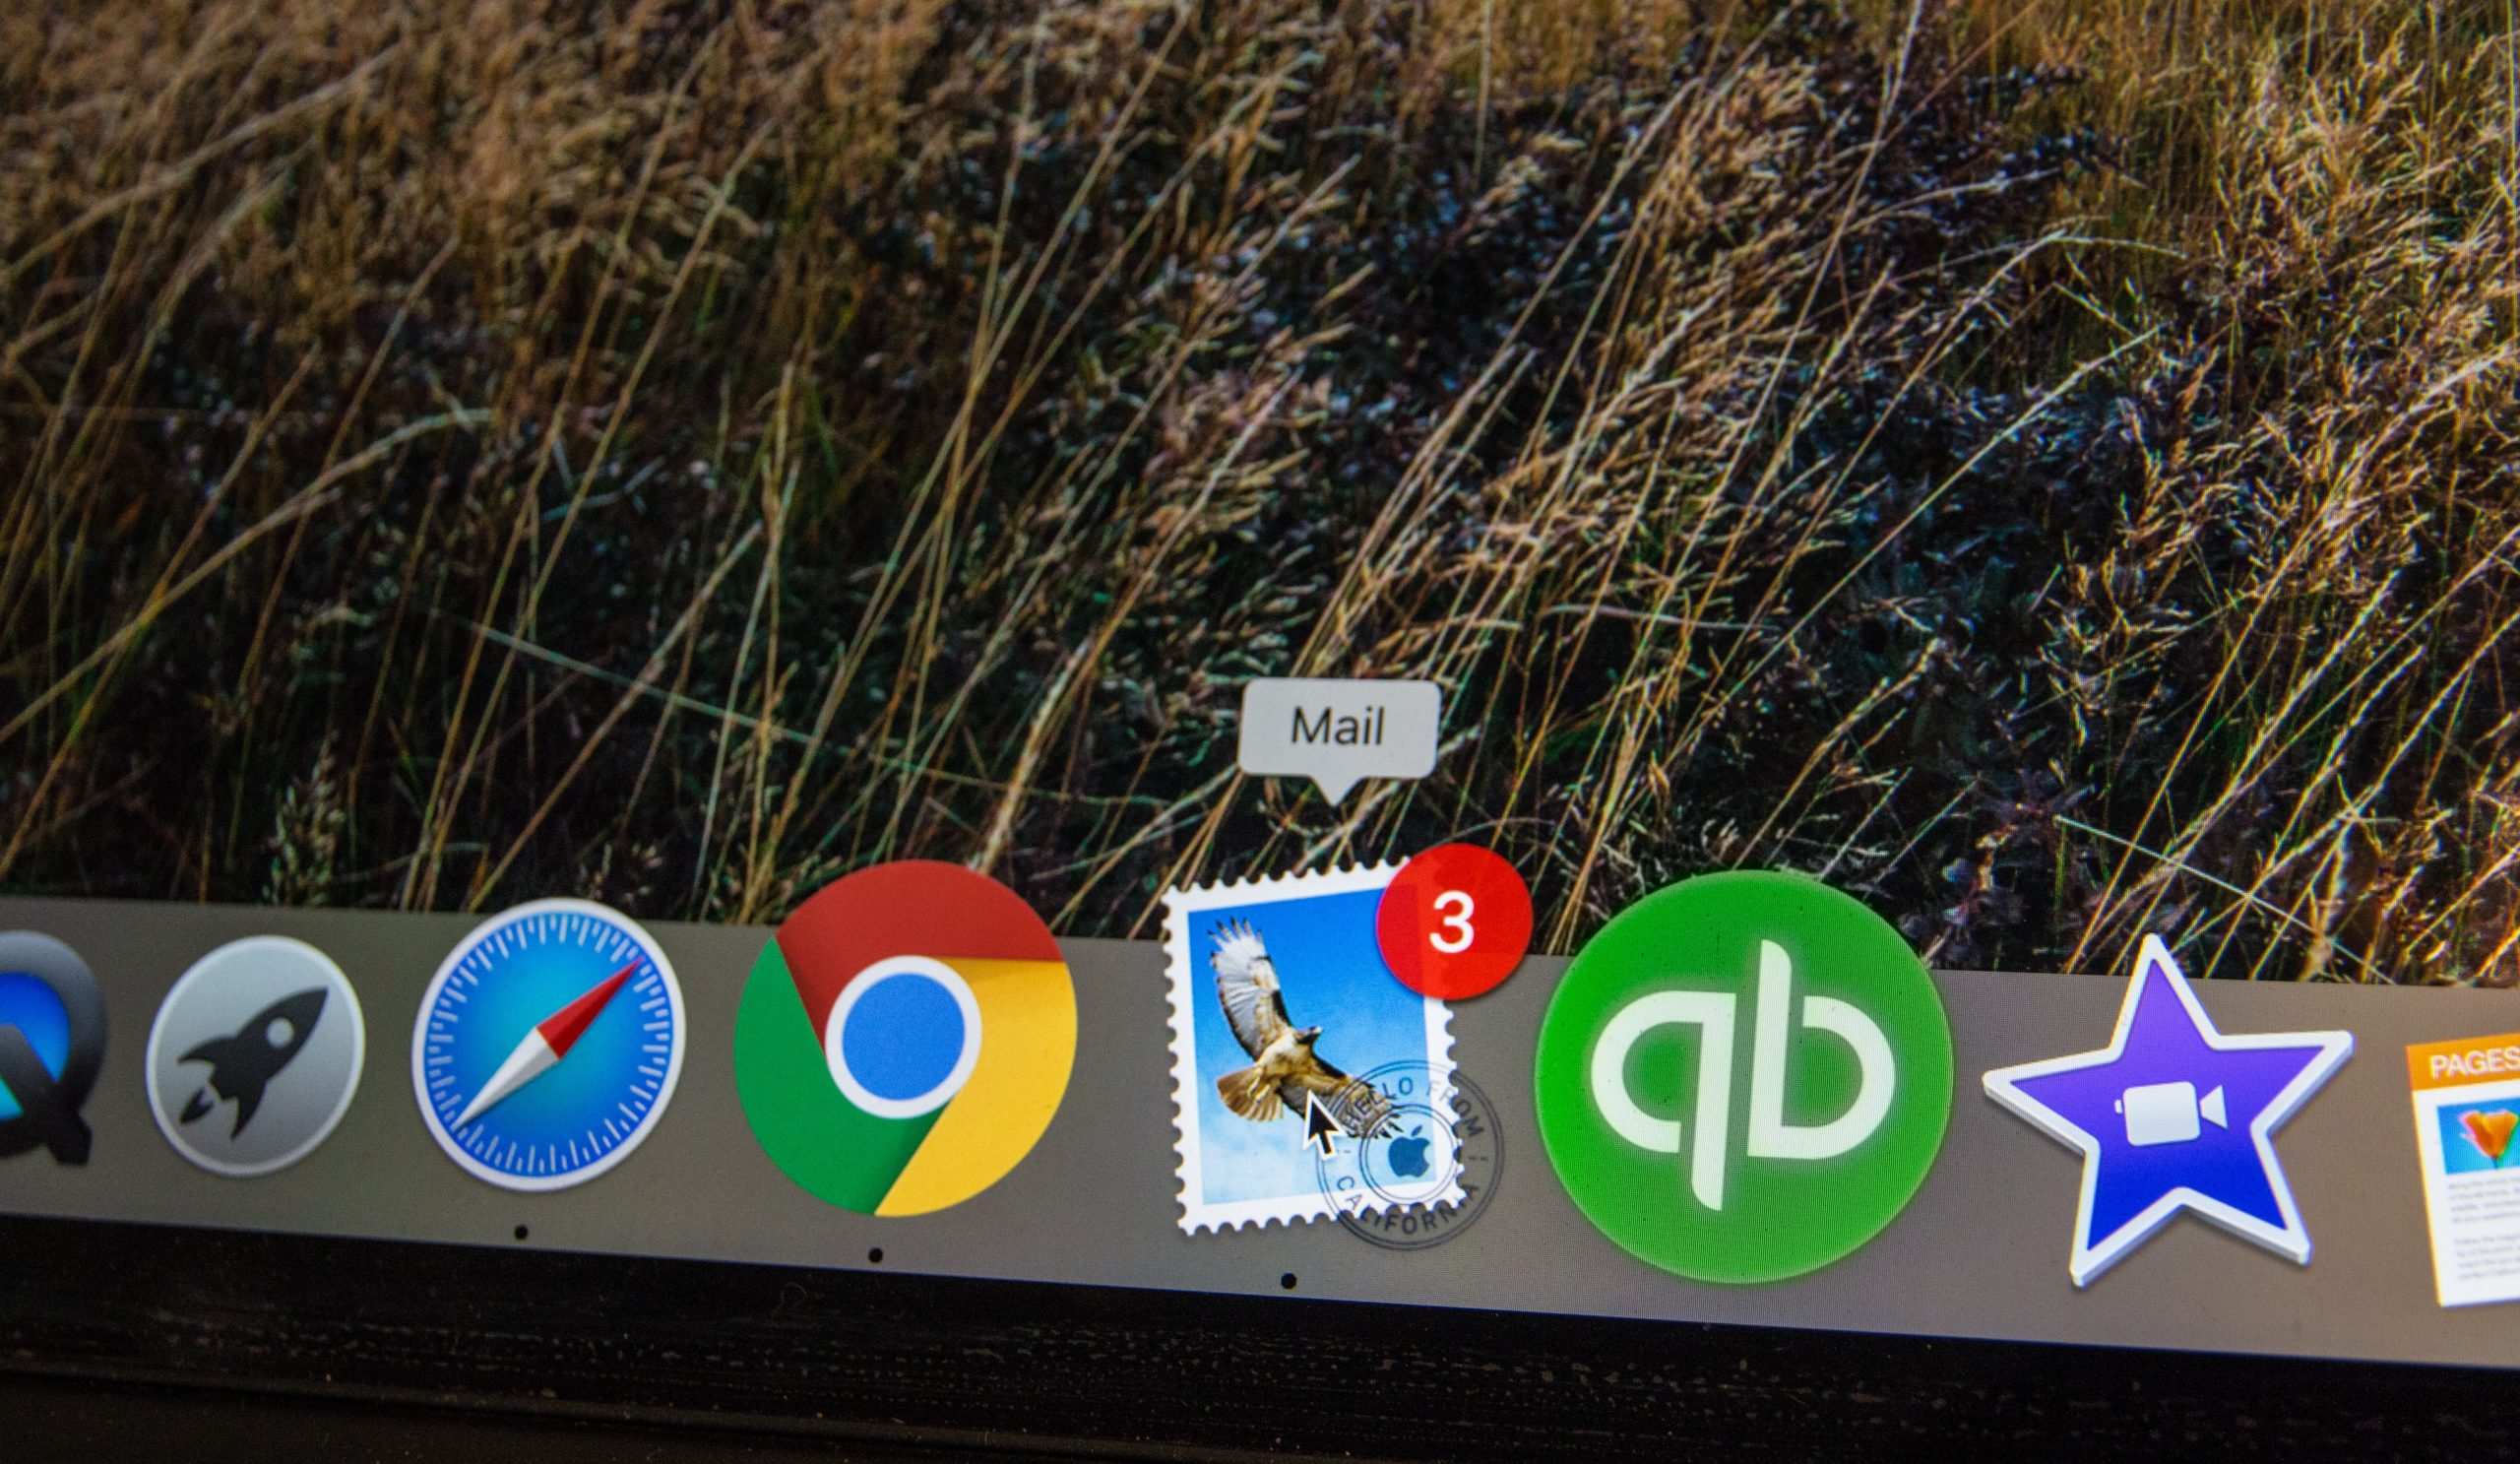 iMac Screen Displaying Red Alert Bubble on Mail Email Program